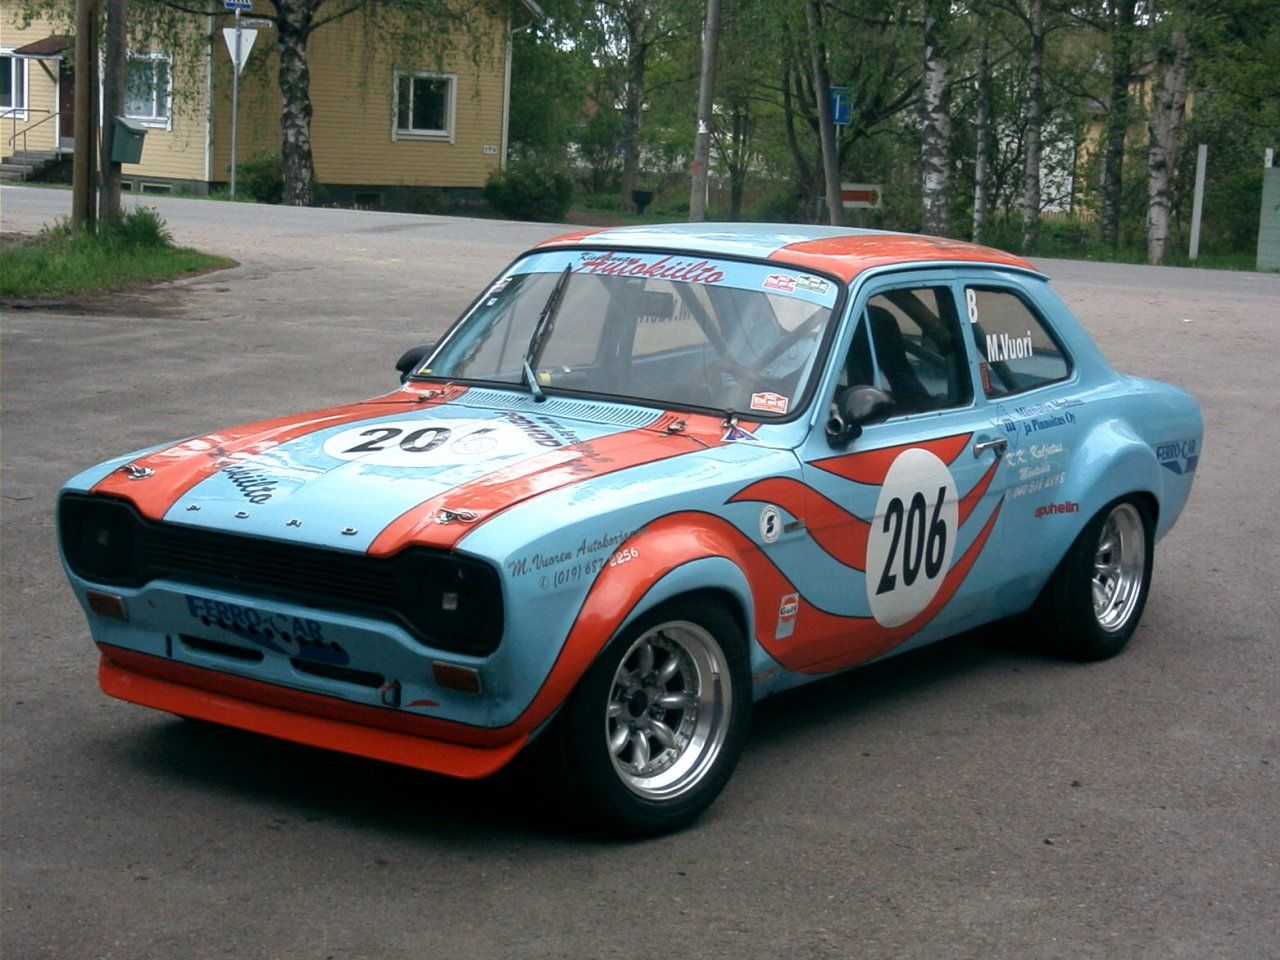 Ford Escort Mk1 | SMCars.Net - Car Blueprints Forum | race cars ...